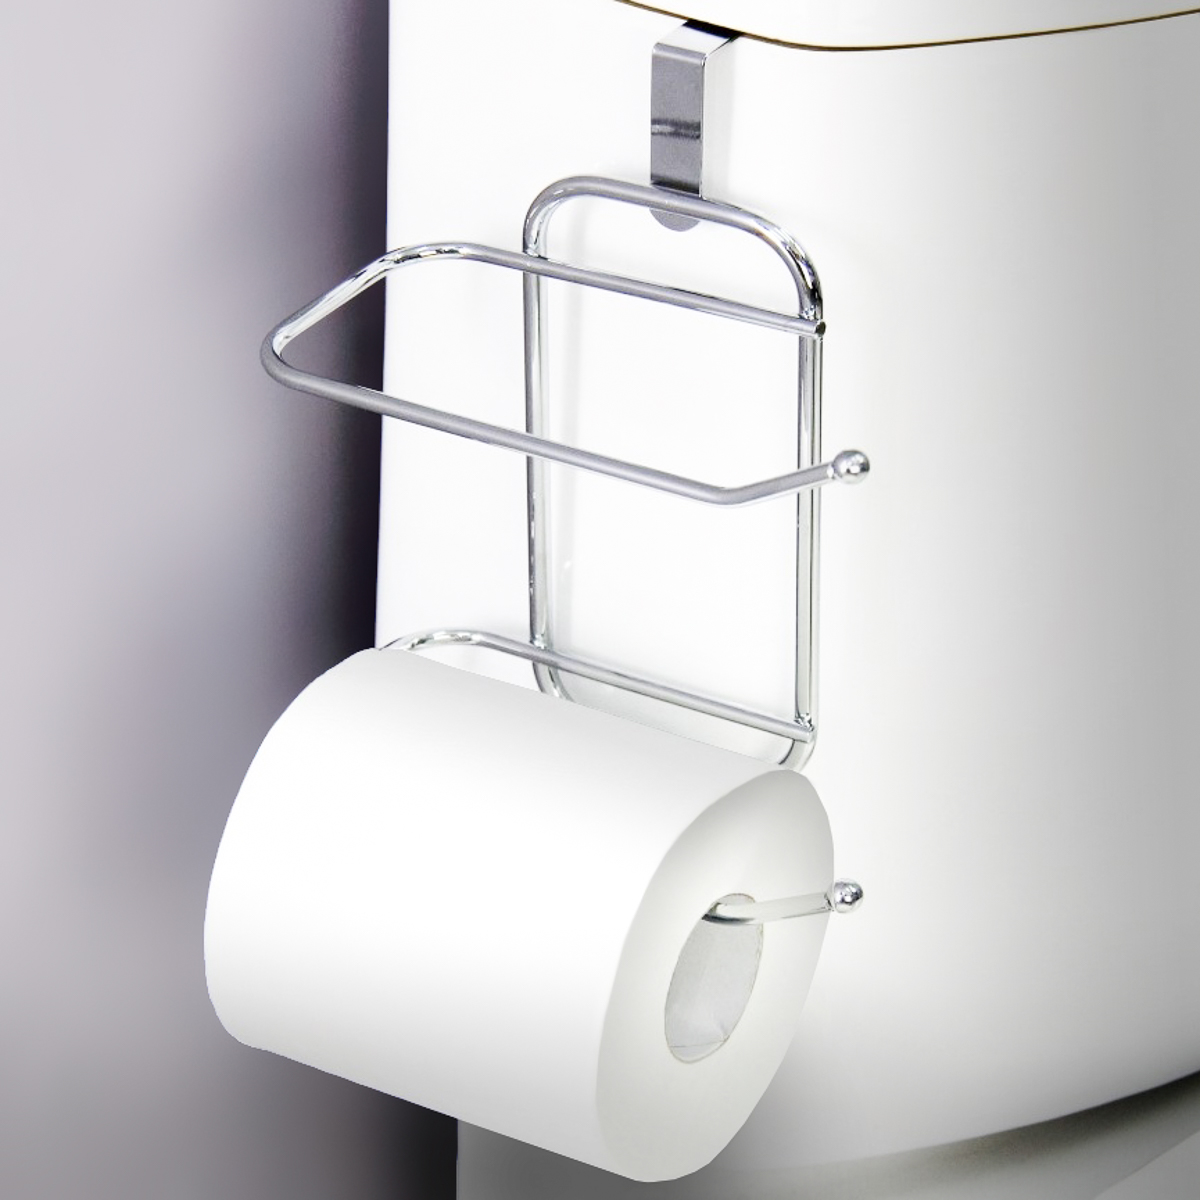 Bath Bliss Chrome Toilet Paper Holder Walmartcom